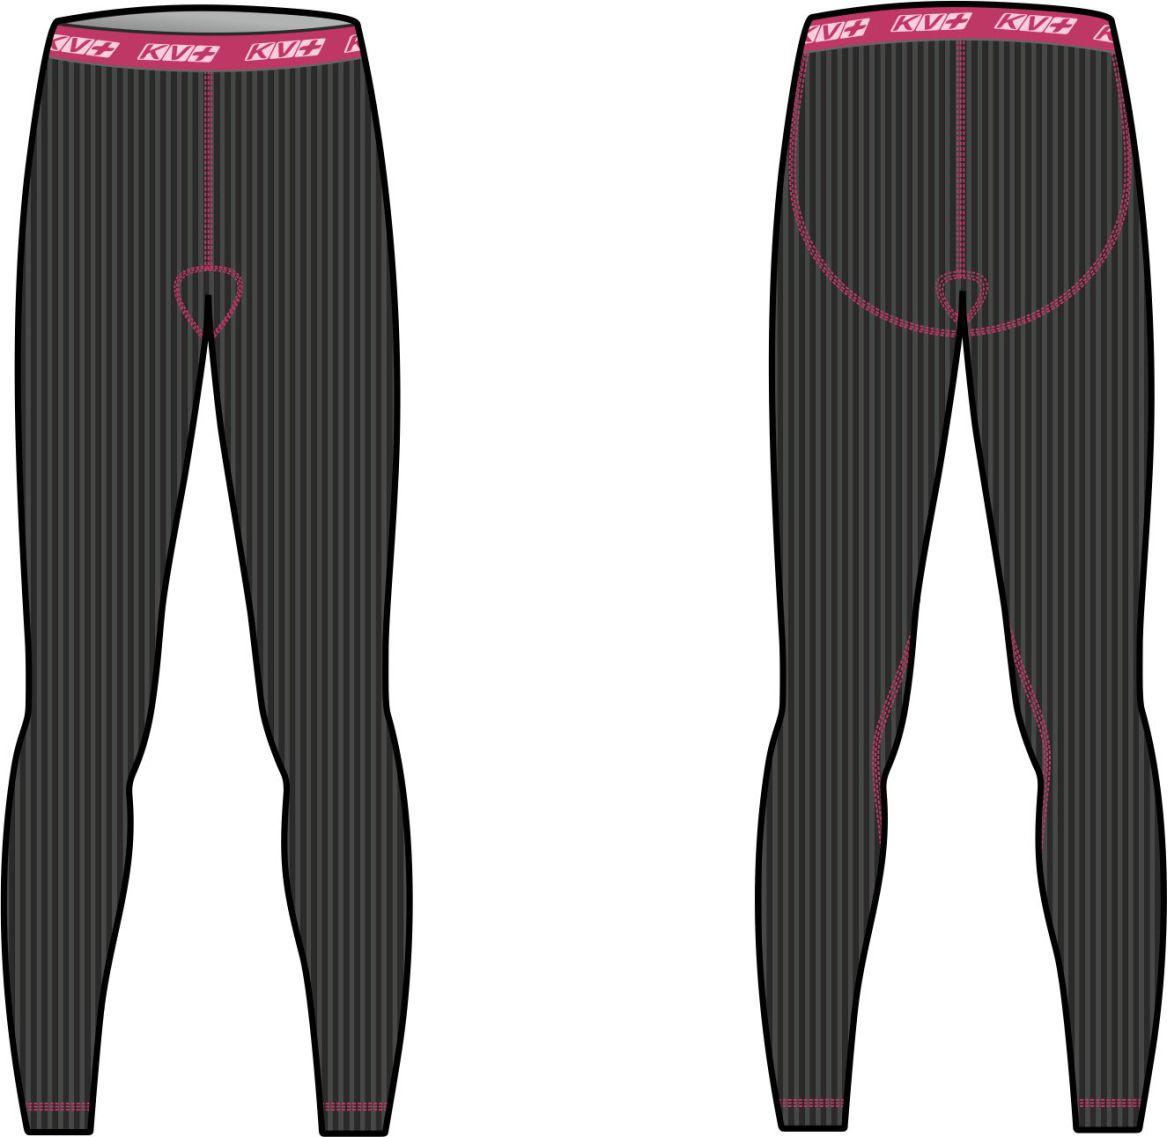 TENERO PANTS WOMAN